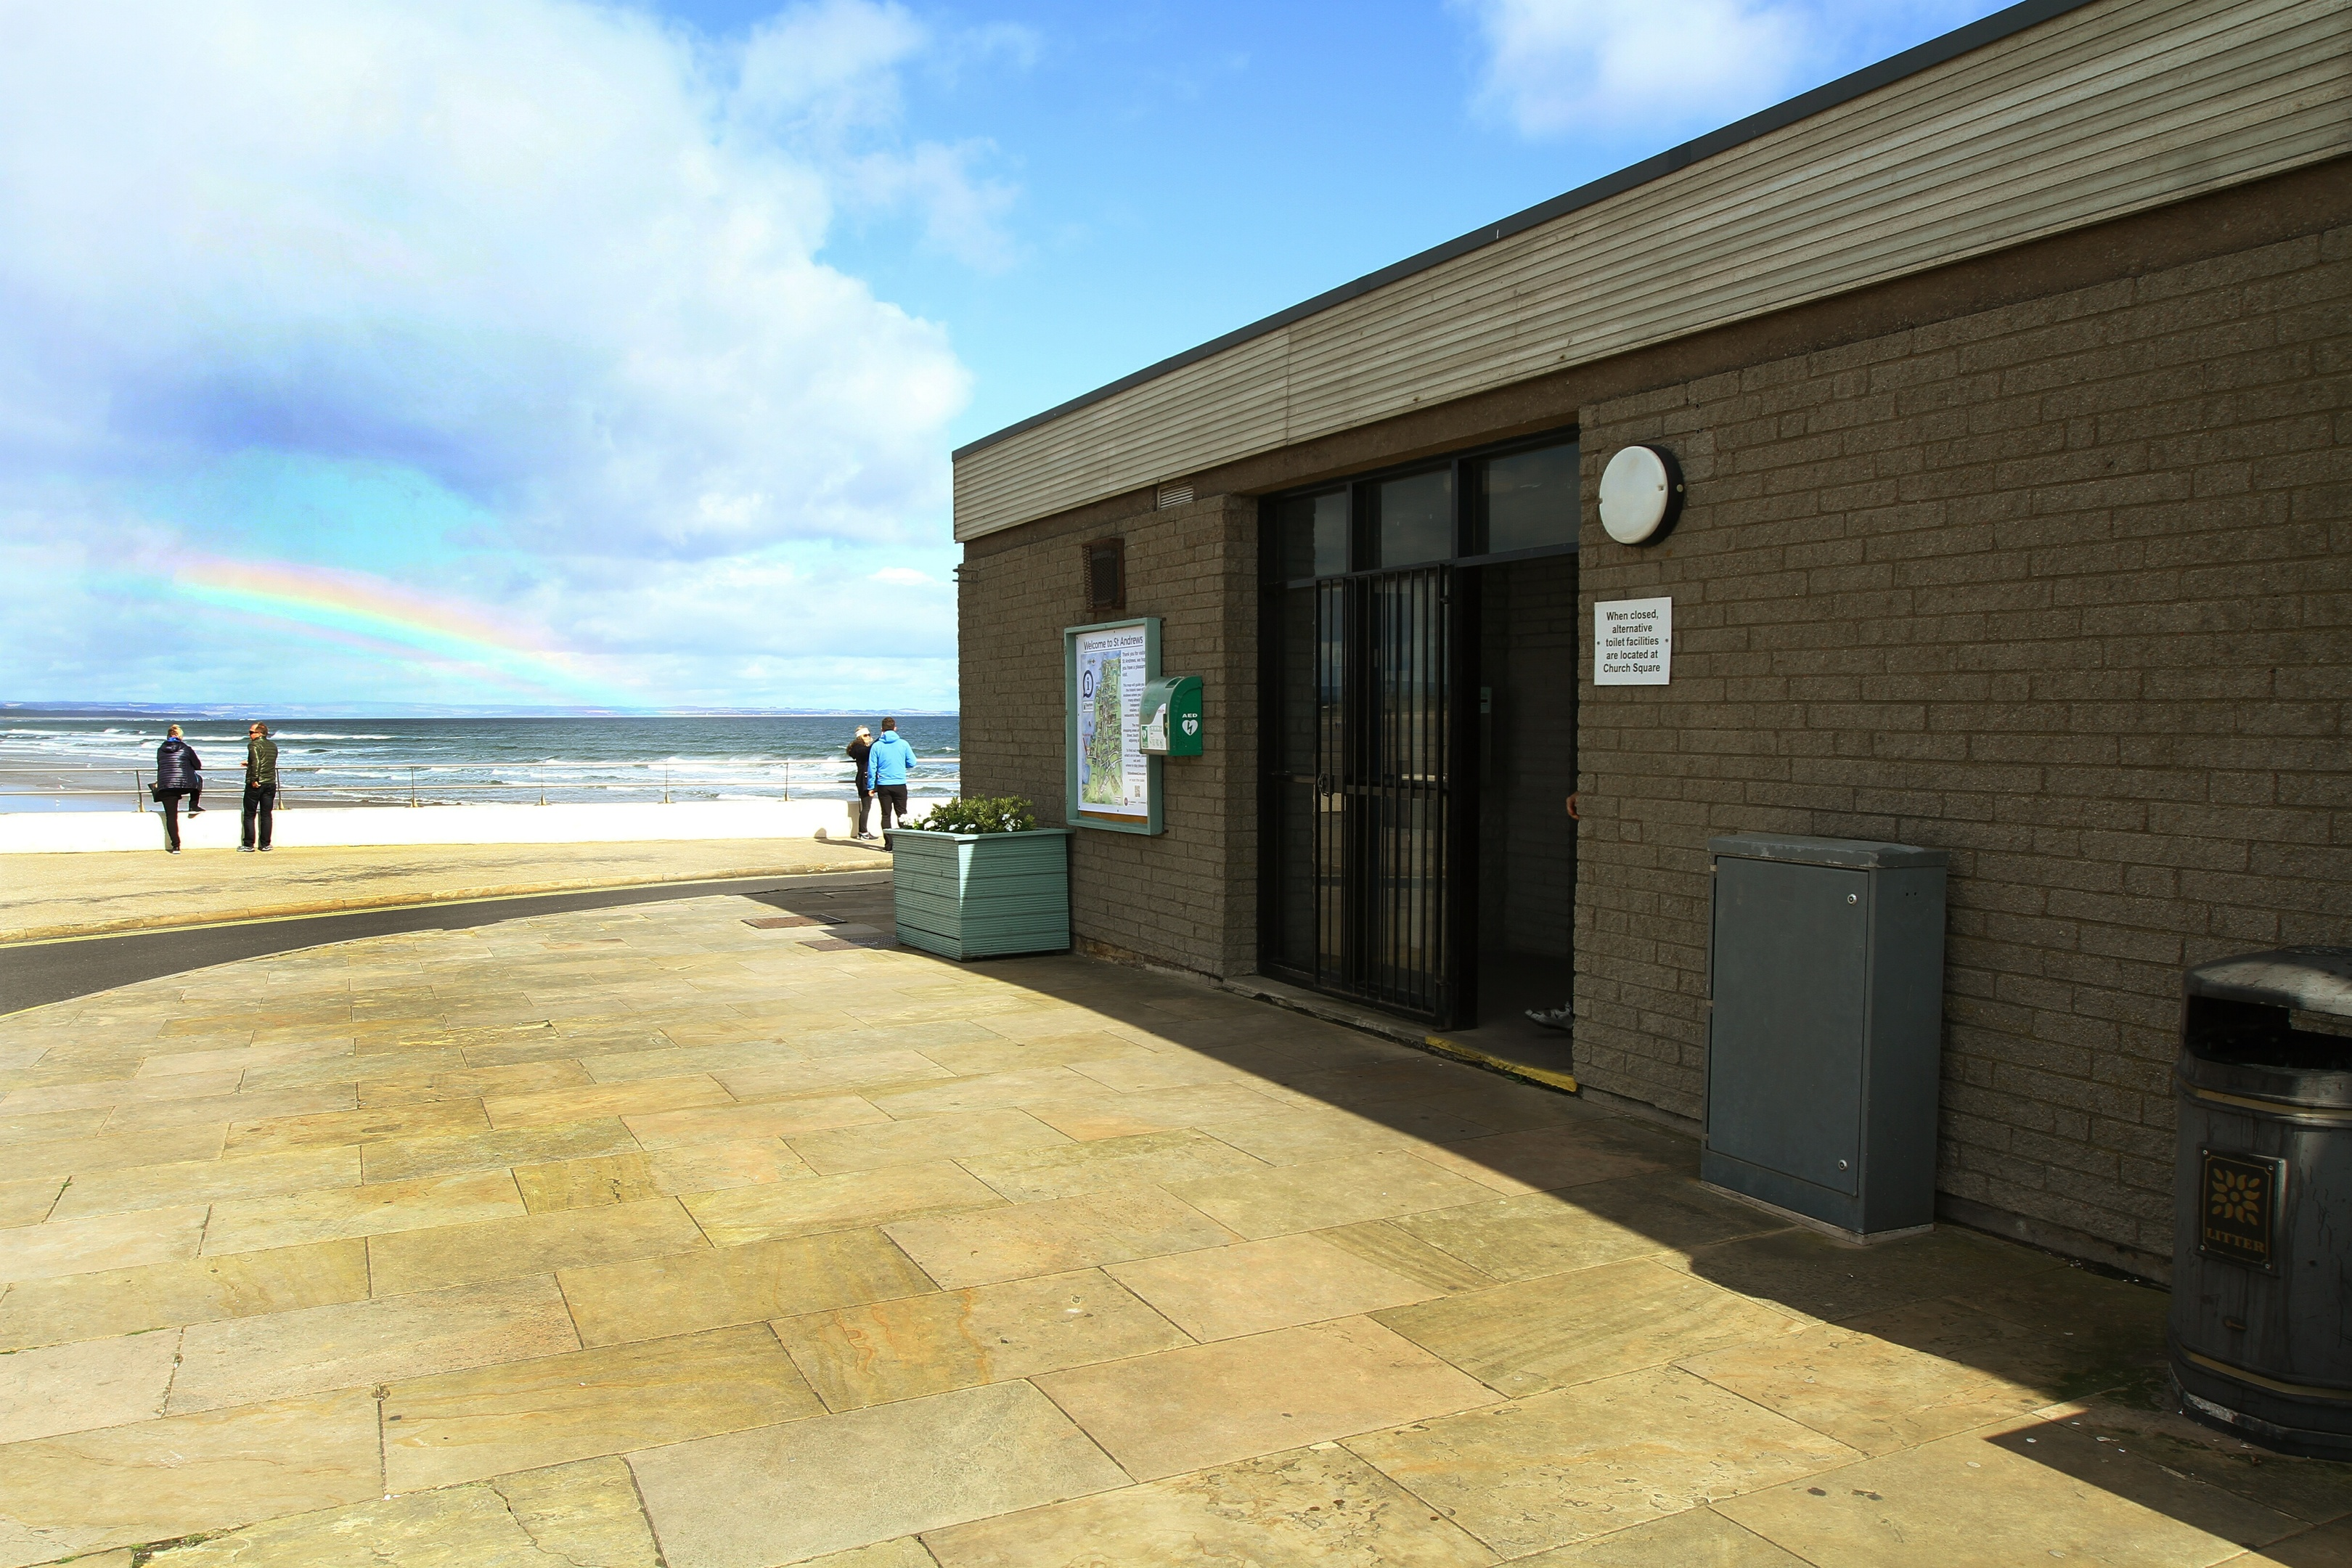 One of the public toilets in St Andrews.